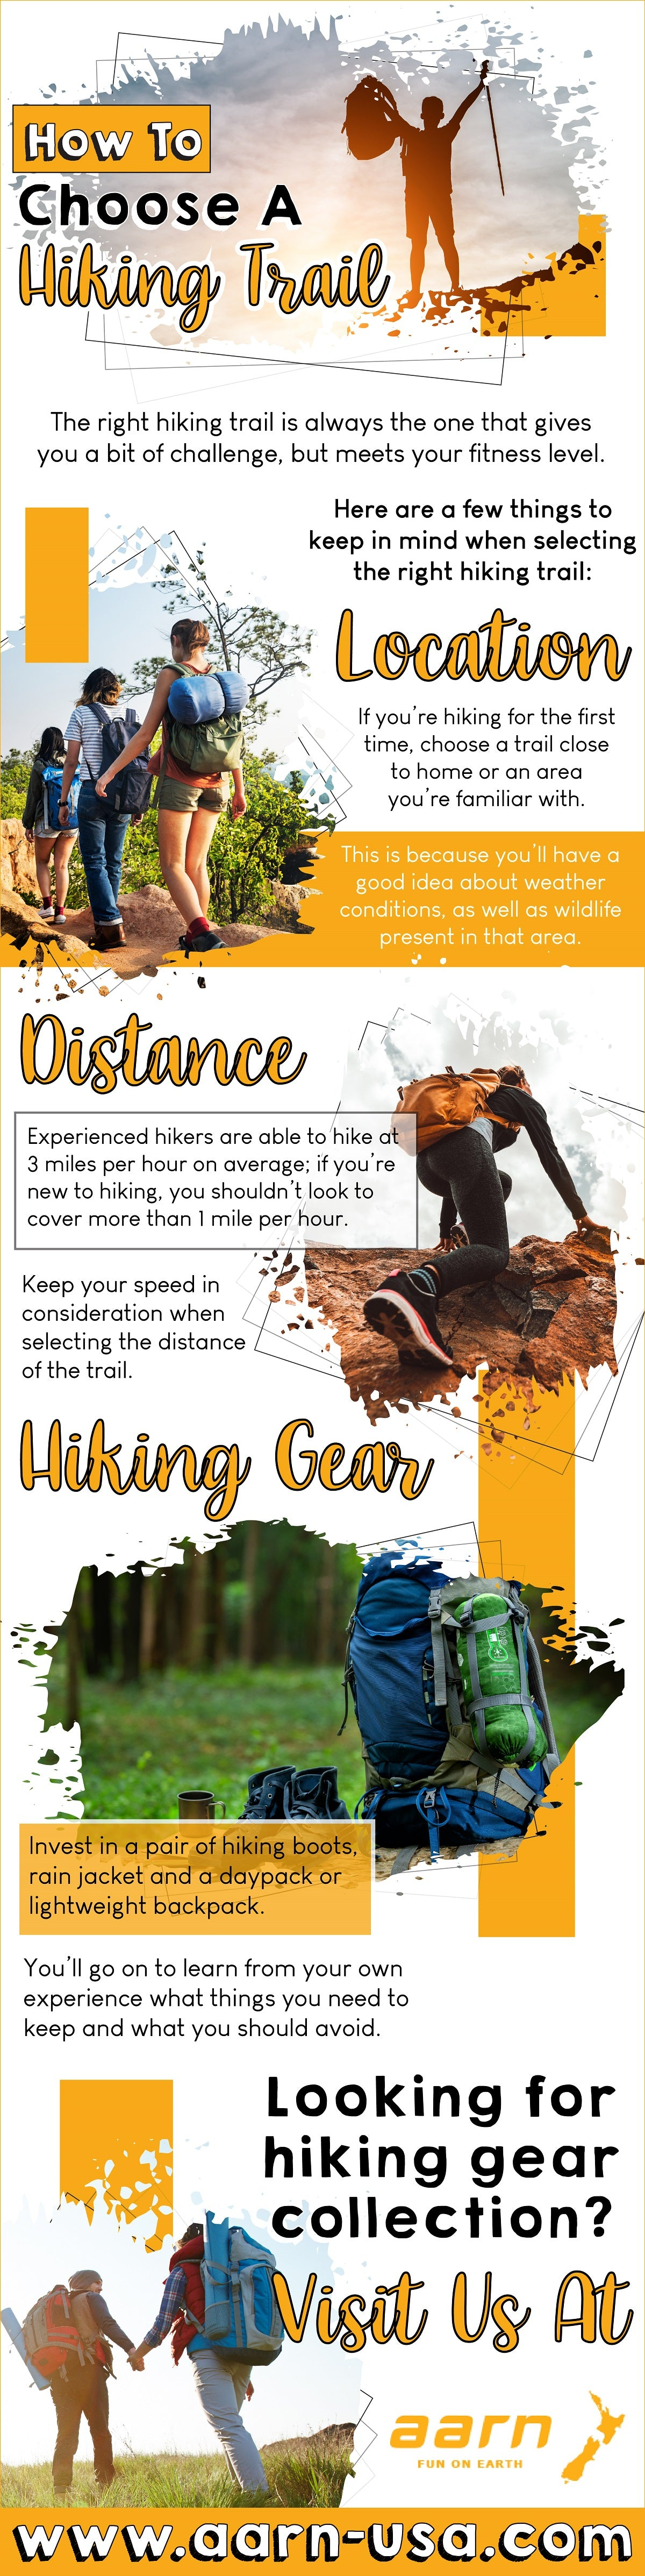 How To Choose A Hiking Trail   Infographic